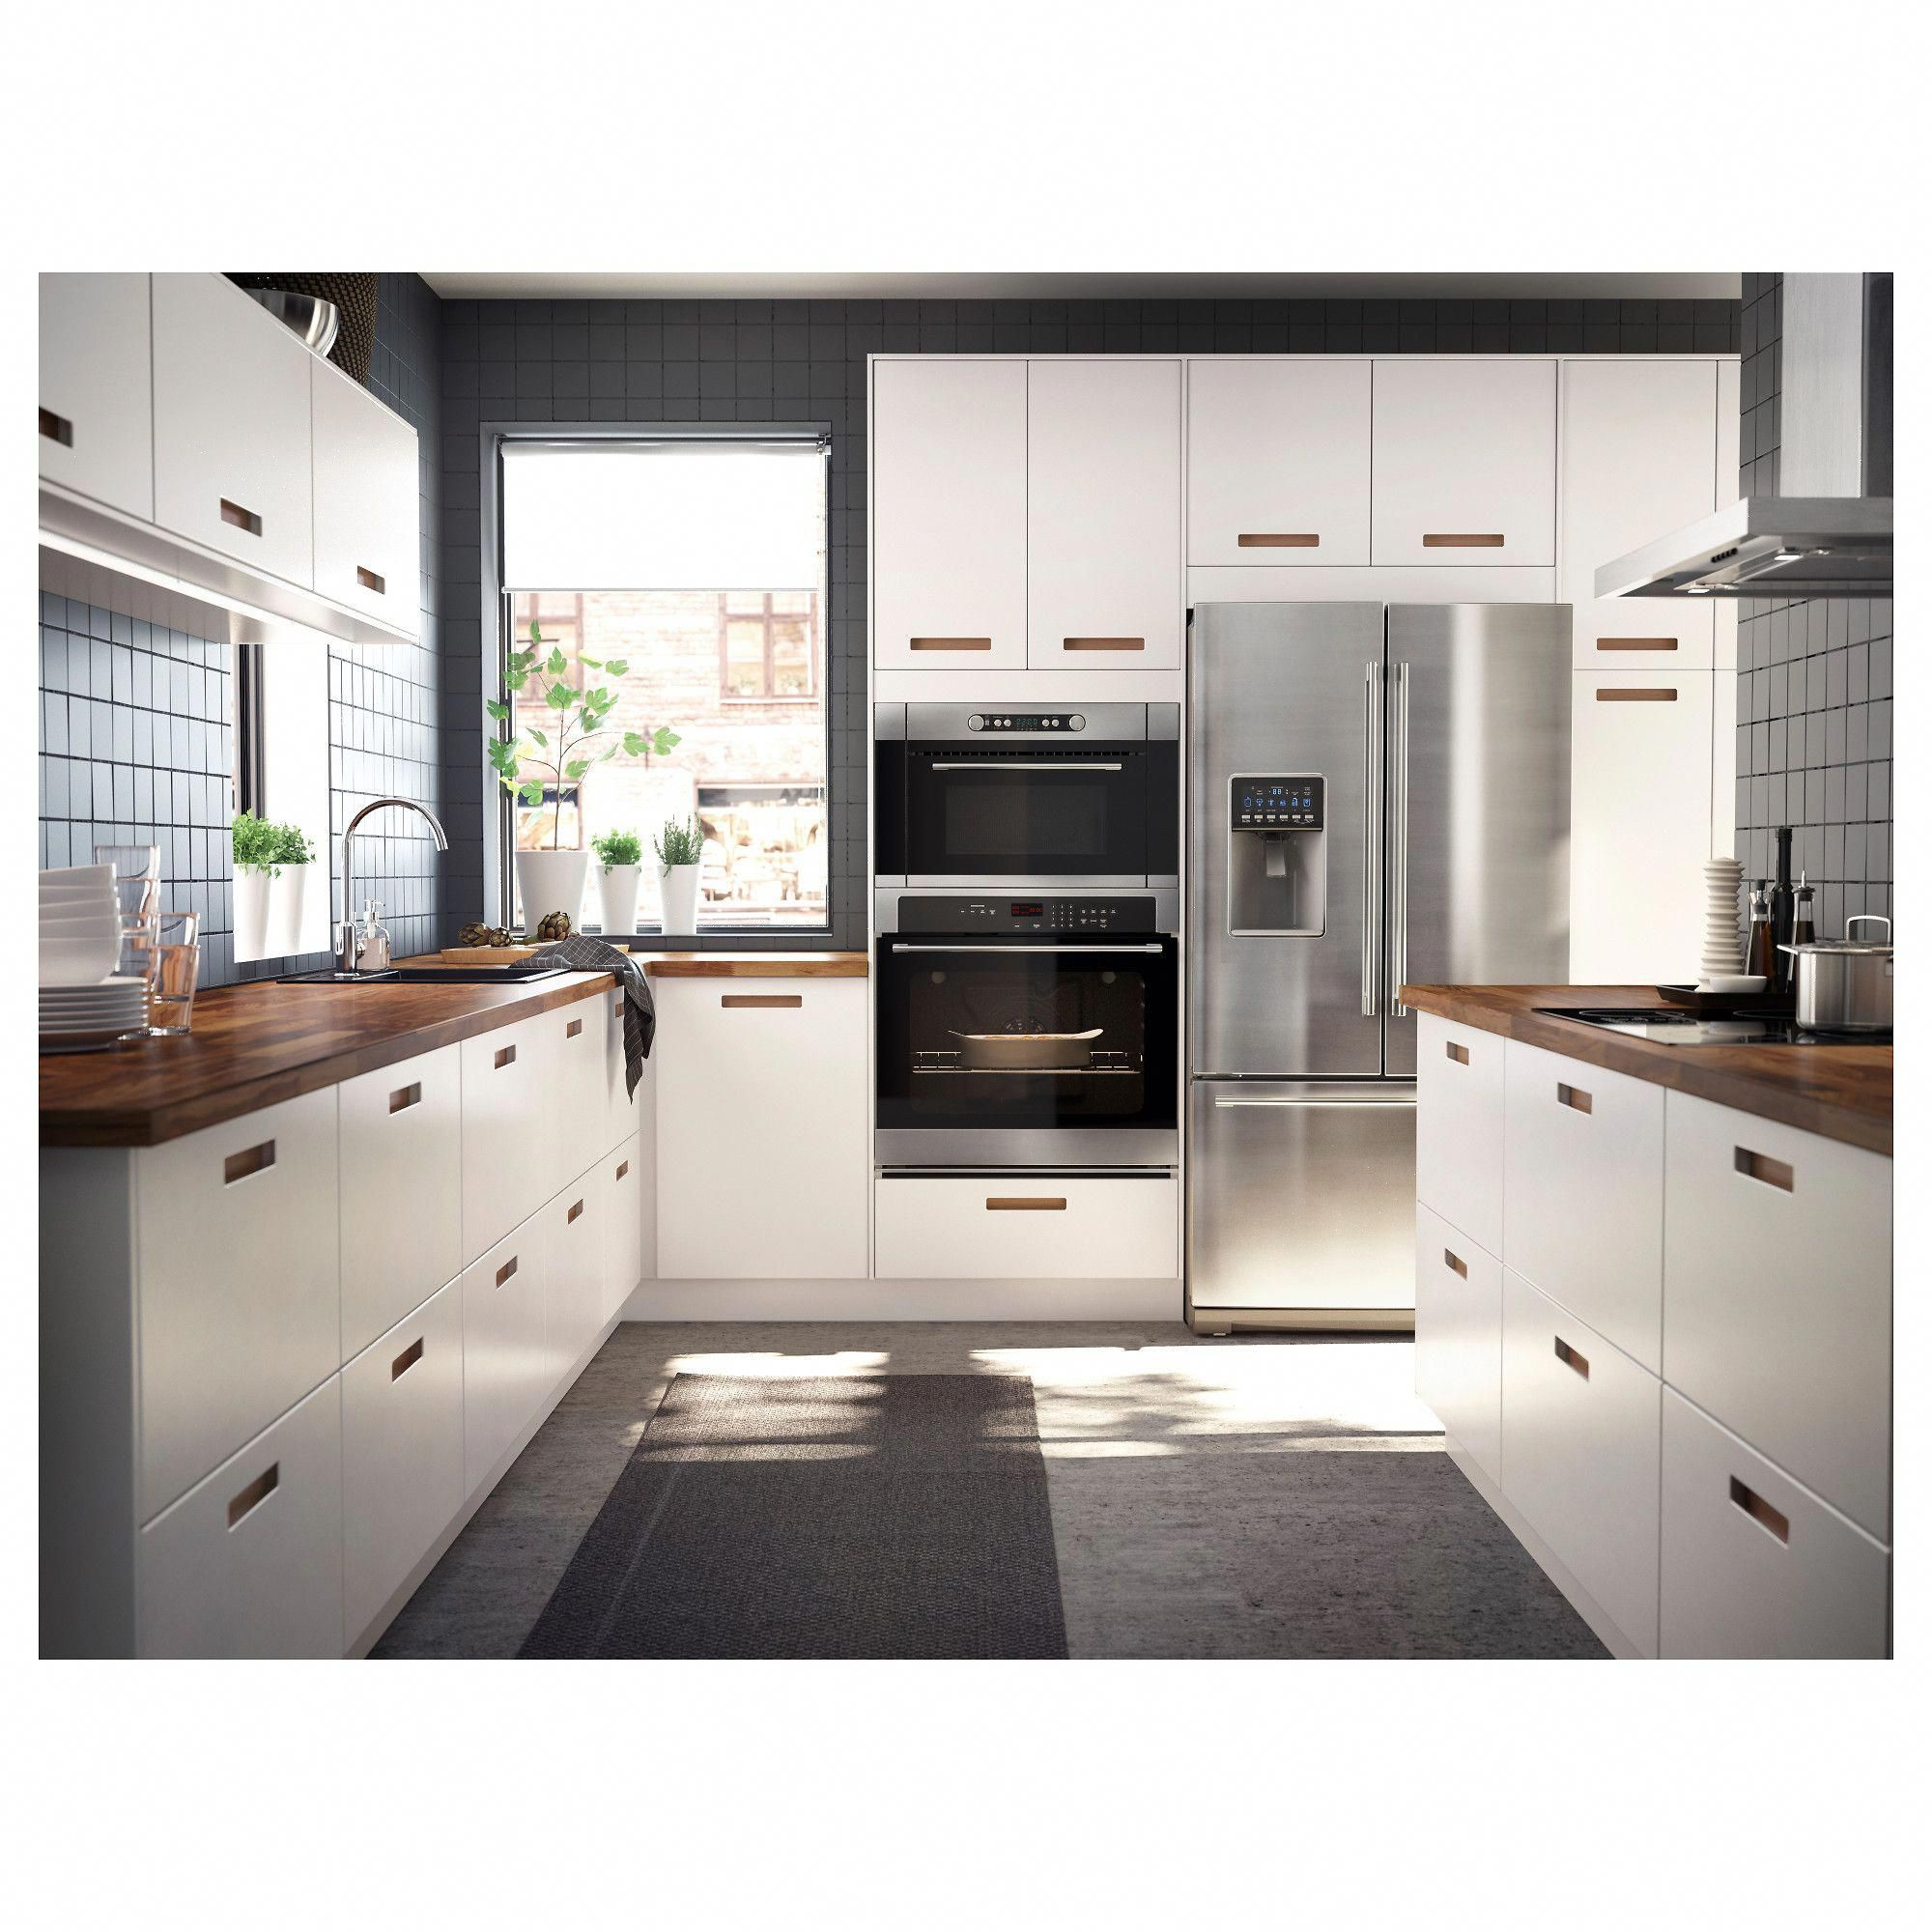 Ikea Nutid Self Cleaning Convection Oven Stainless Steel Cocinasgrises Kitchen Plans Interior Design Kitchen Kitchen Interior